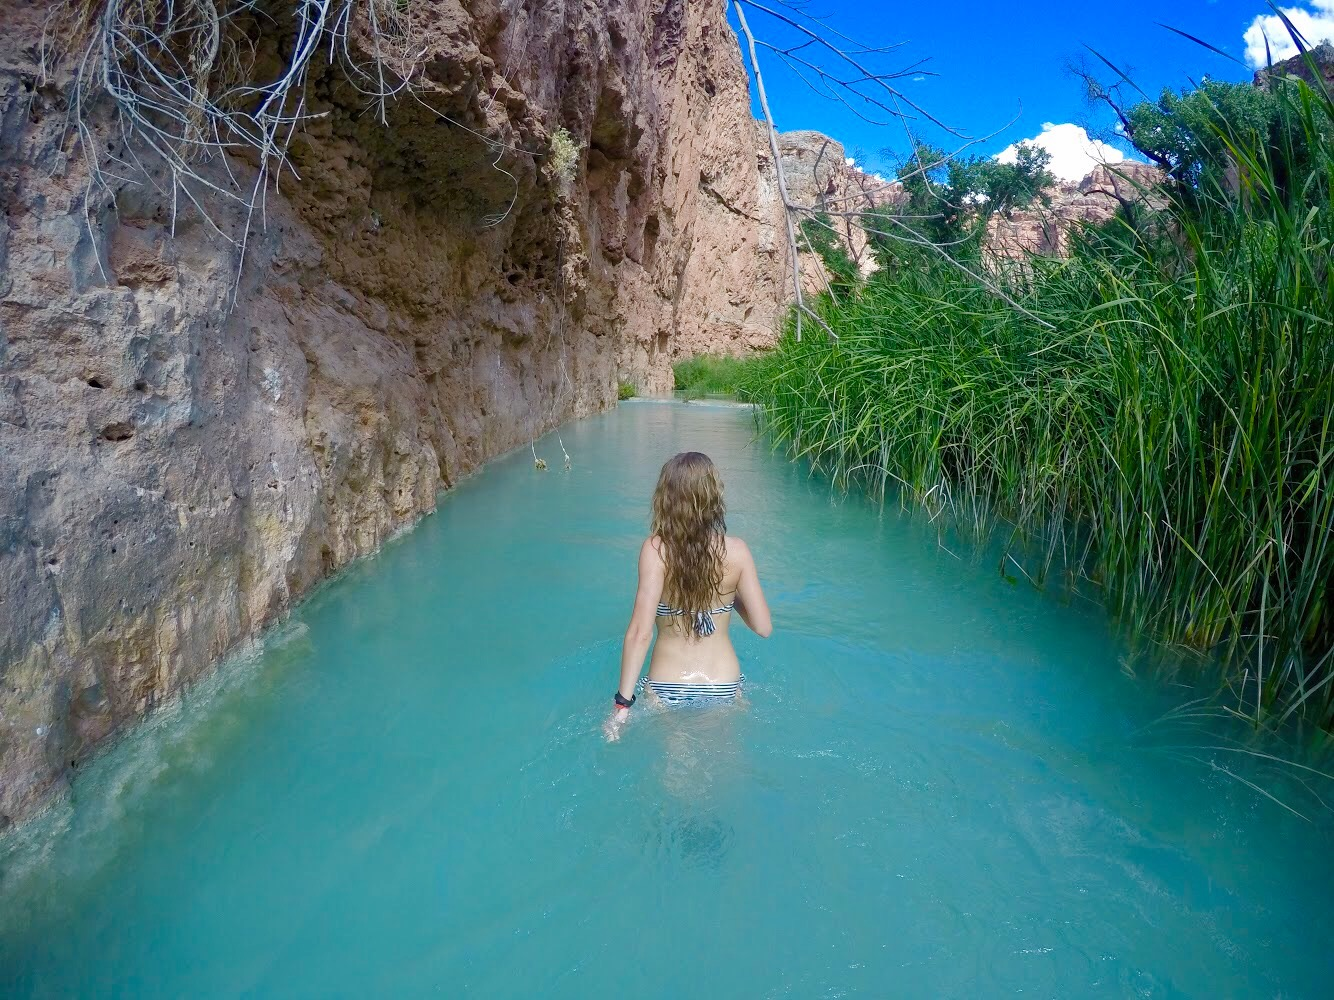 thisworldexists - do it before you die: hike to havasu falls